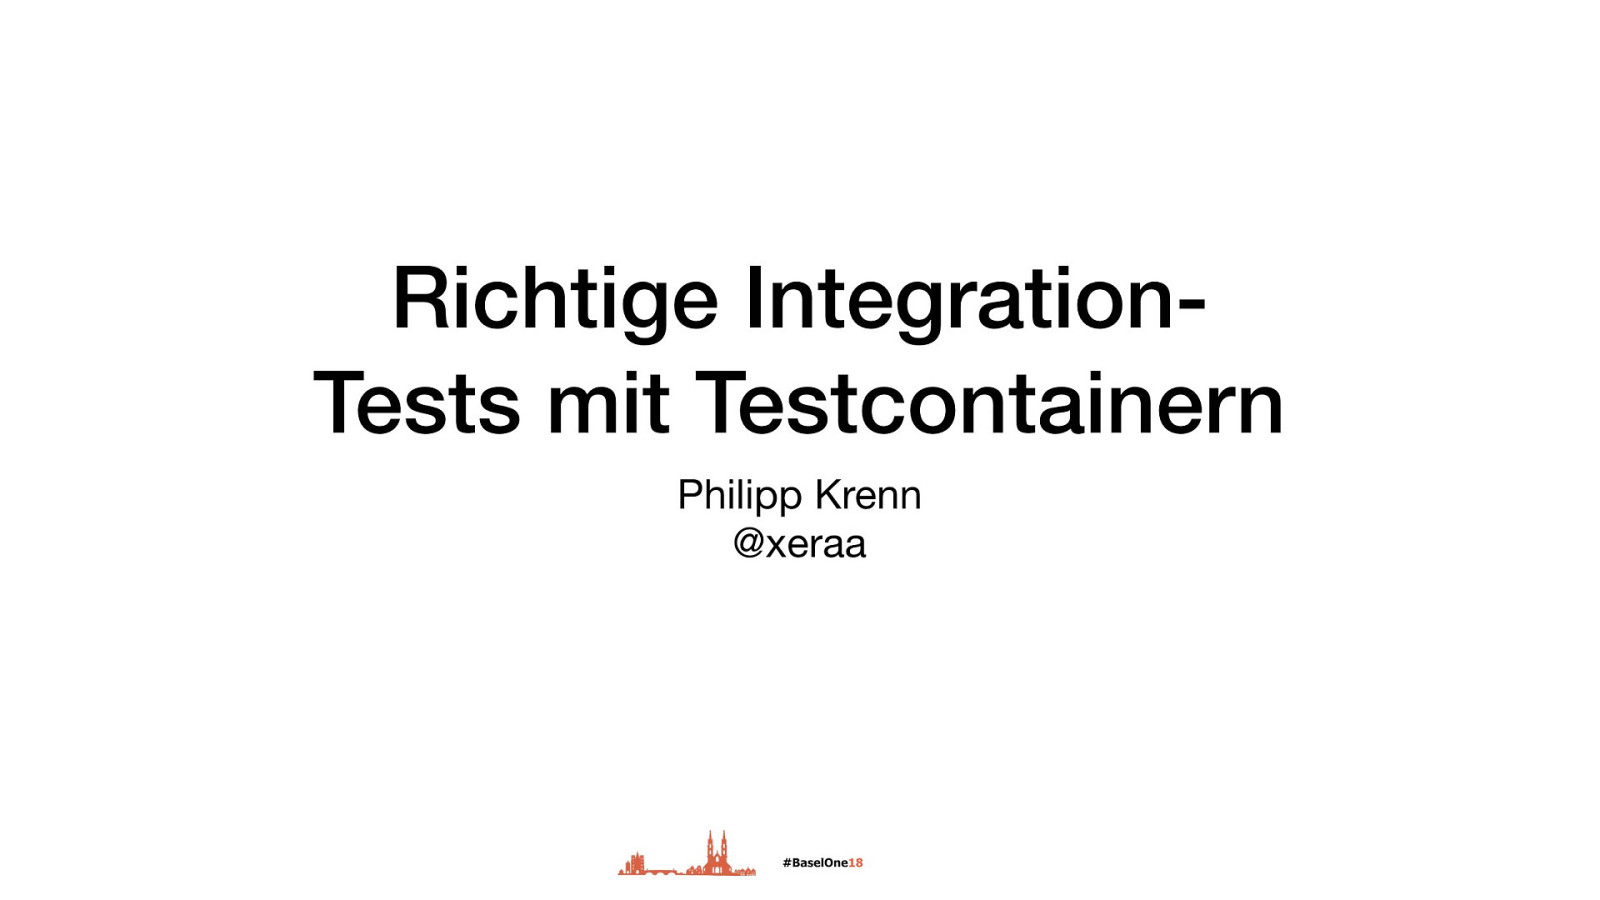 Richtige Integration-Tests mit Testcontainern